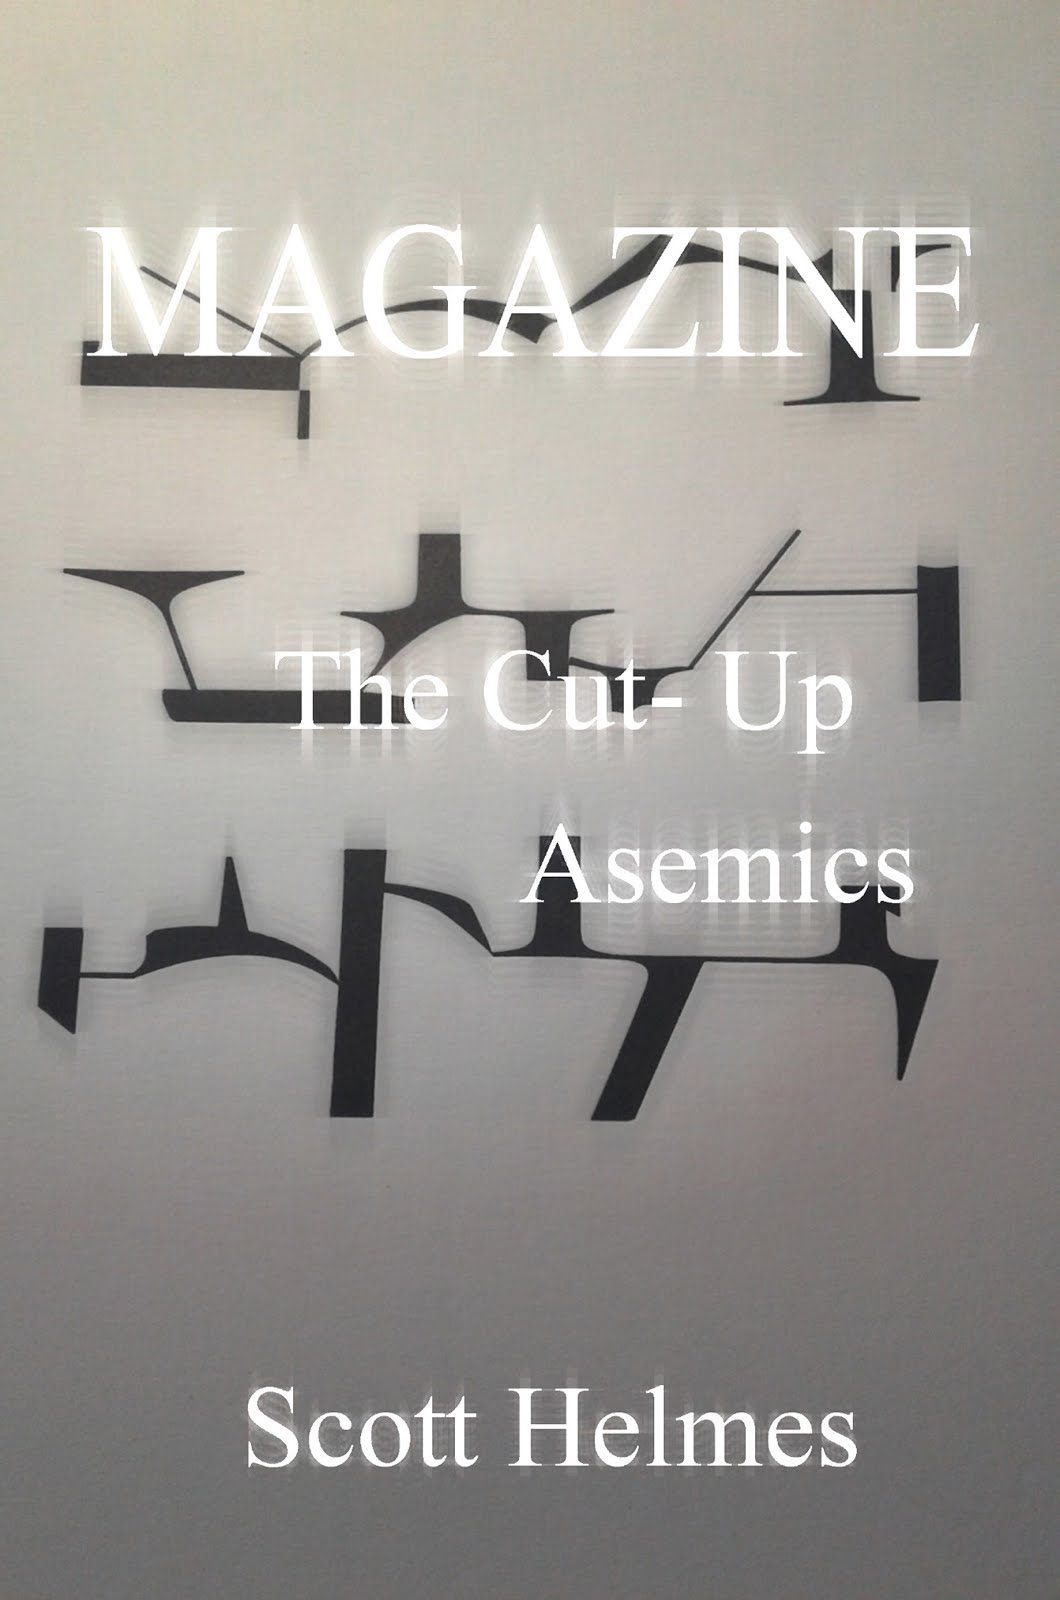 Coming Soon in Winter of 2019/2020! Magazine: The Cut-Up Asemics by Scott Helmes